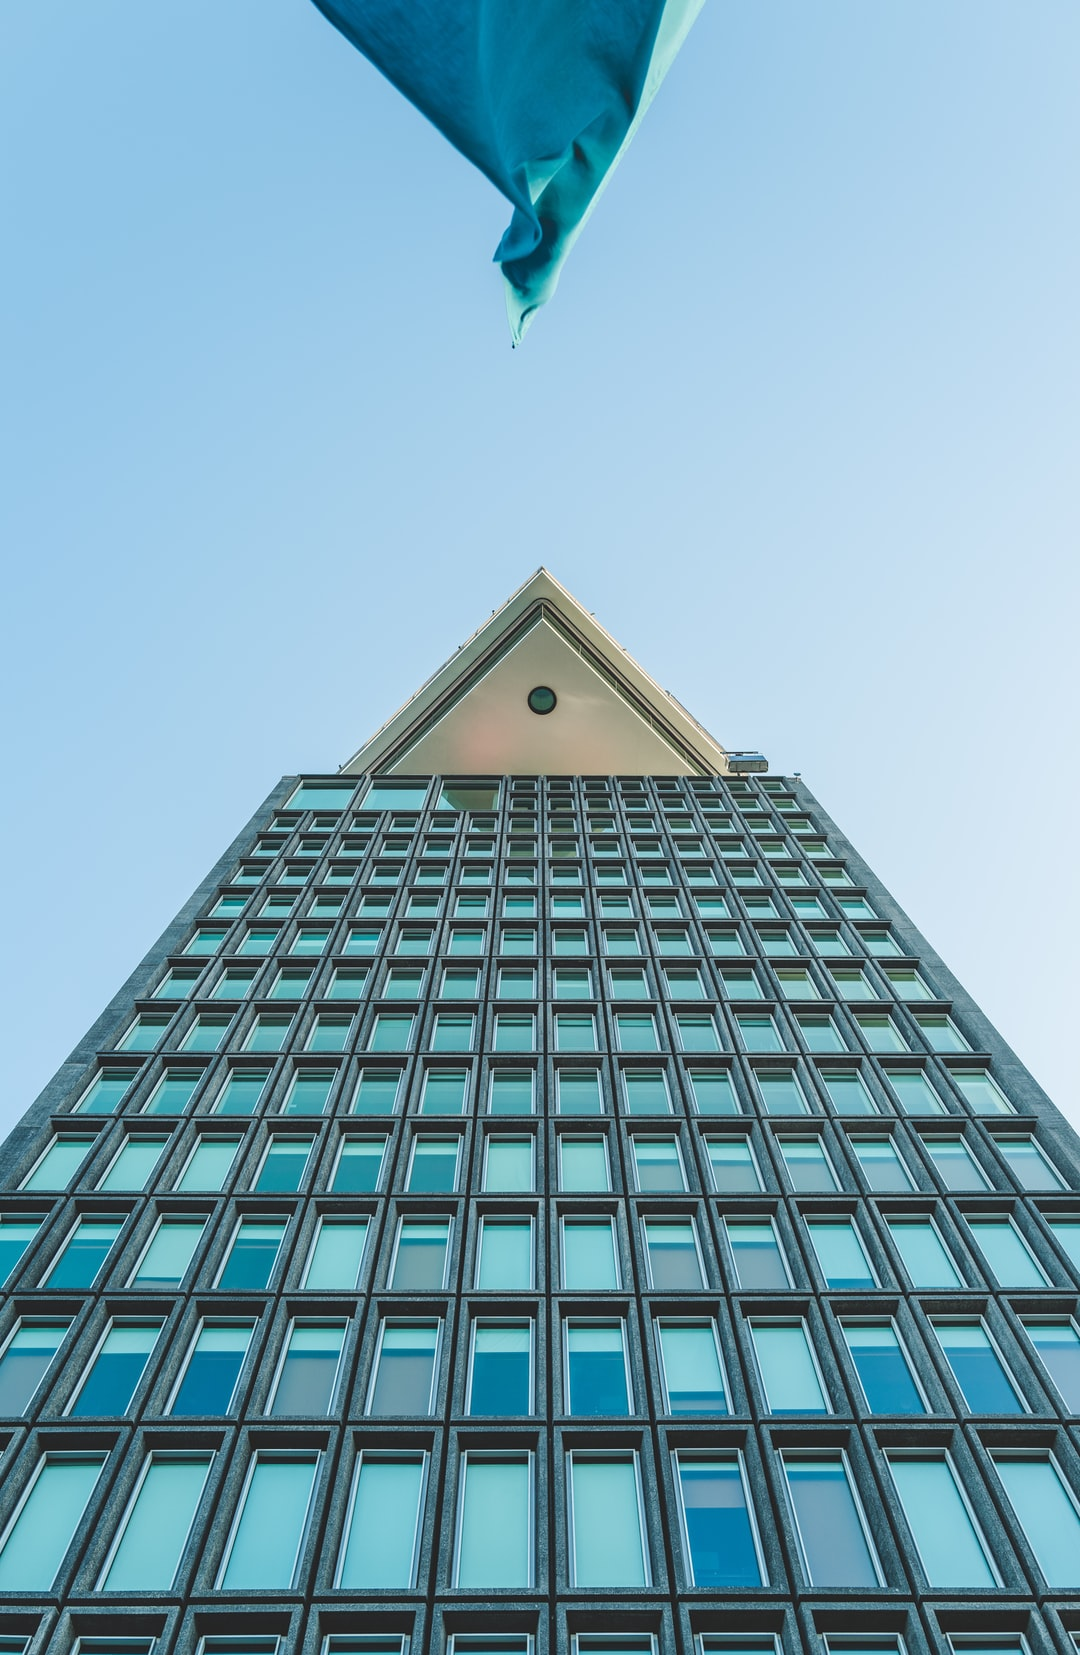 Looking up at the top of the A'DAM tower from the street below.